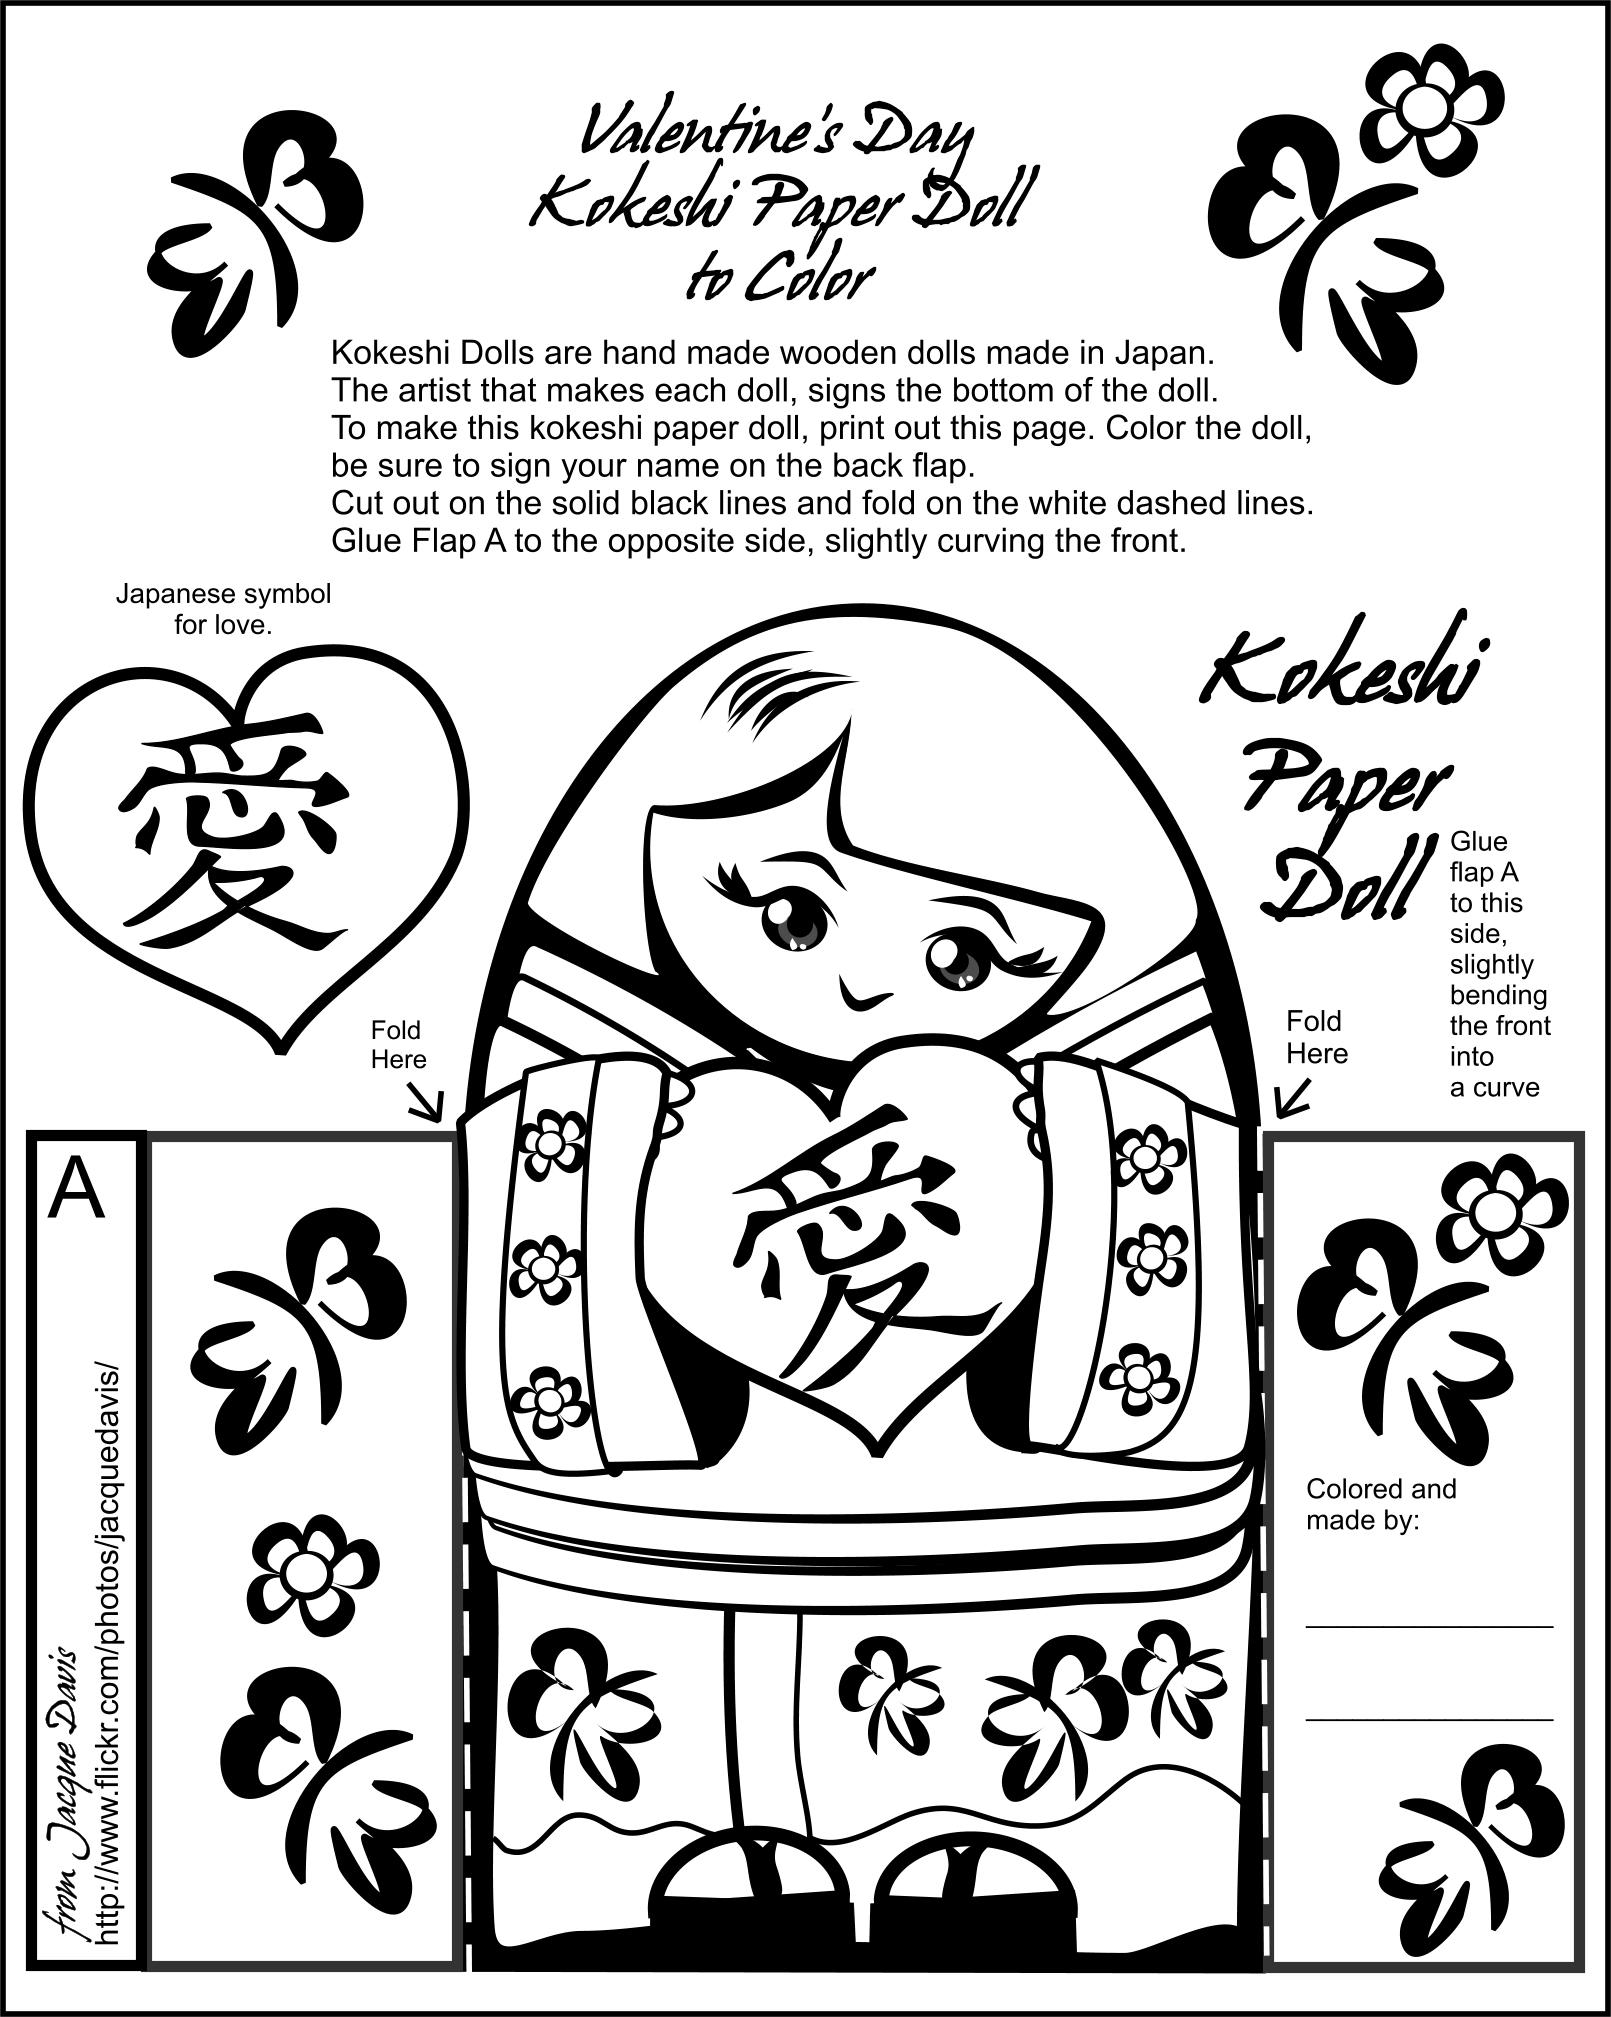 Valentine S Day Kokeshi Paper Doll To Color